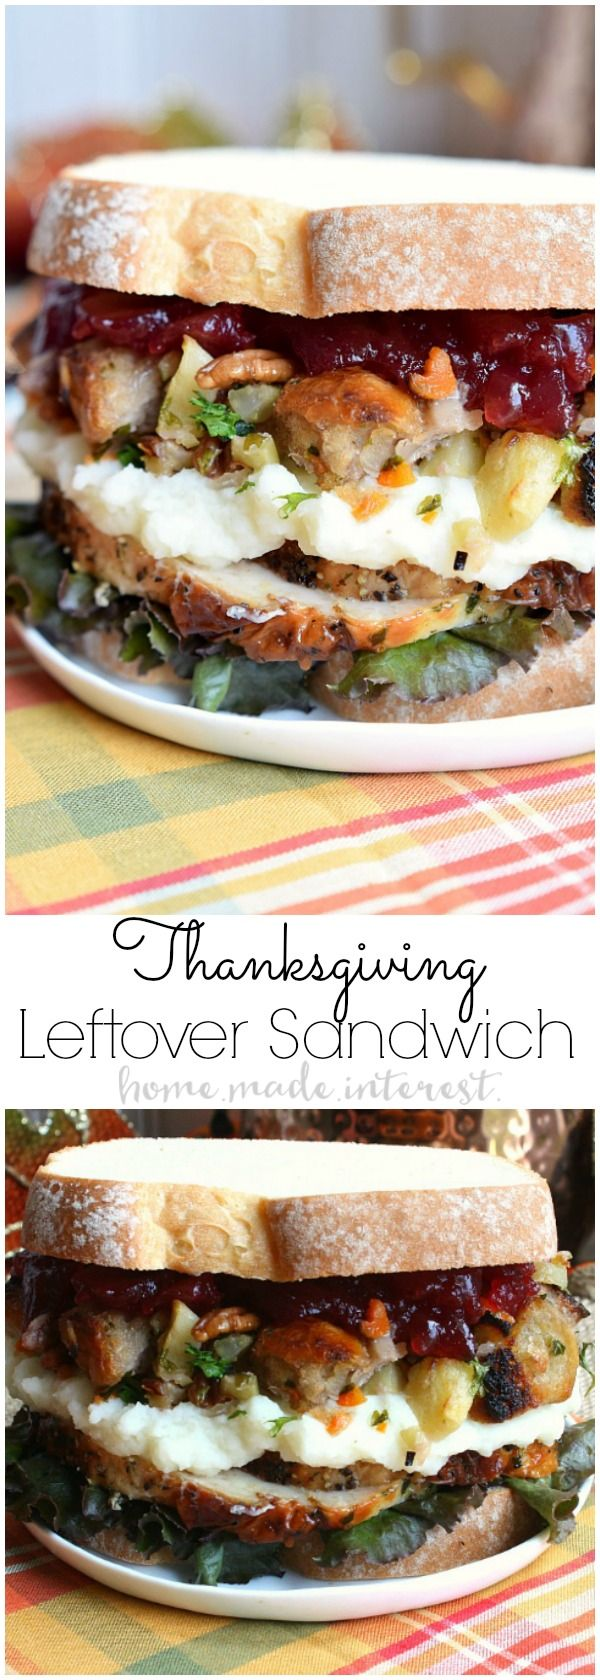 Thanksgiving recipes are amazing but what do you do with all of those leftovers? This Thanksgiving Leftovers Sandwich is layers of turkey, mashed potatoes, cranberry sauce and stuffing all between two slices of bread. Turn your favorite Thanksgiving recipes into this awesome thanksgiving leftovers recipe!